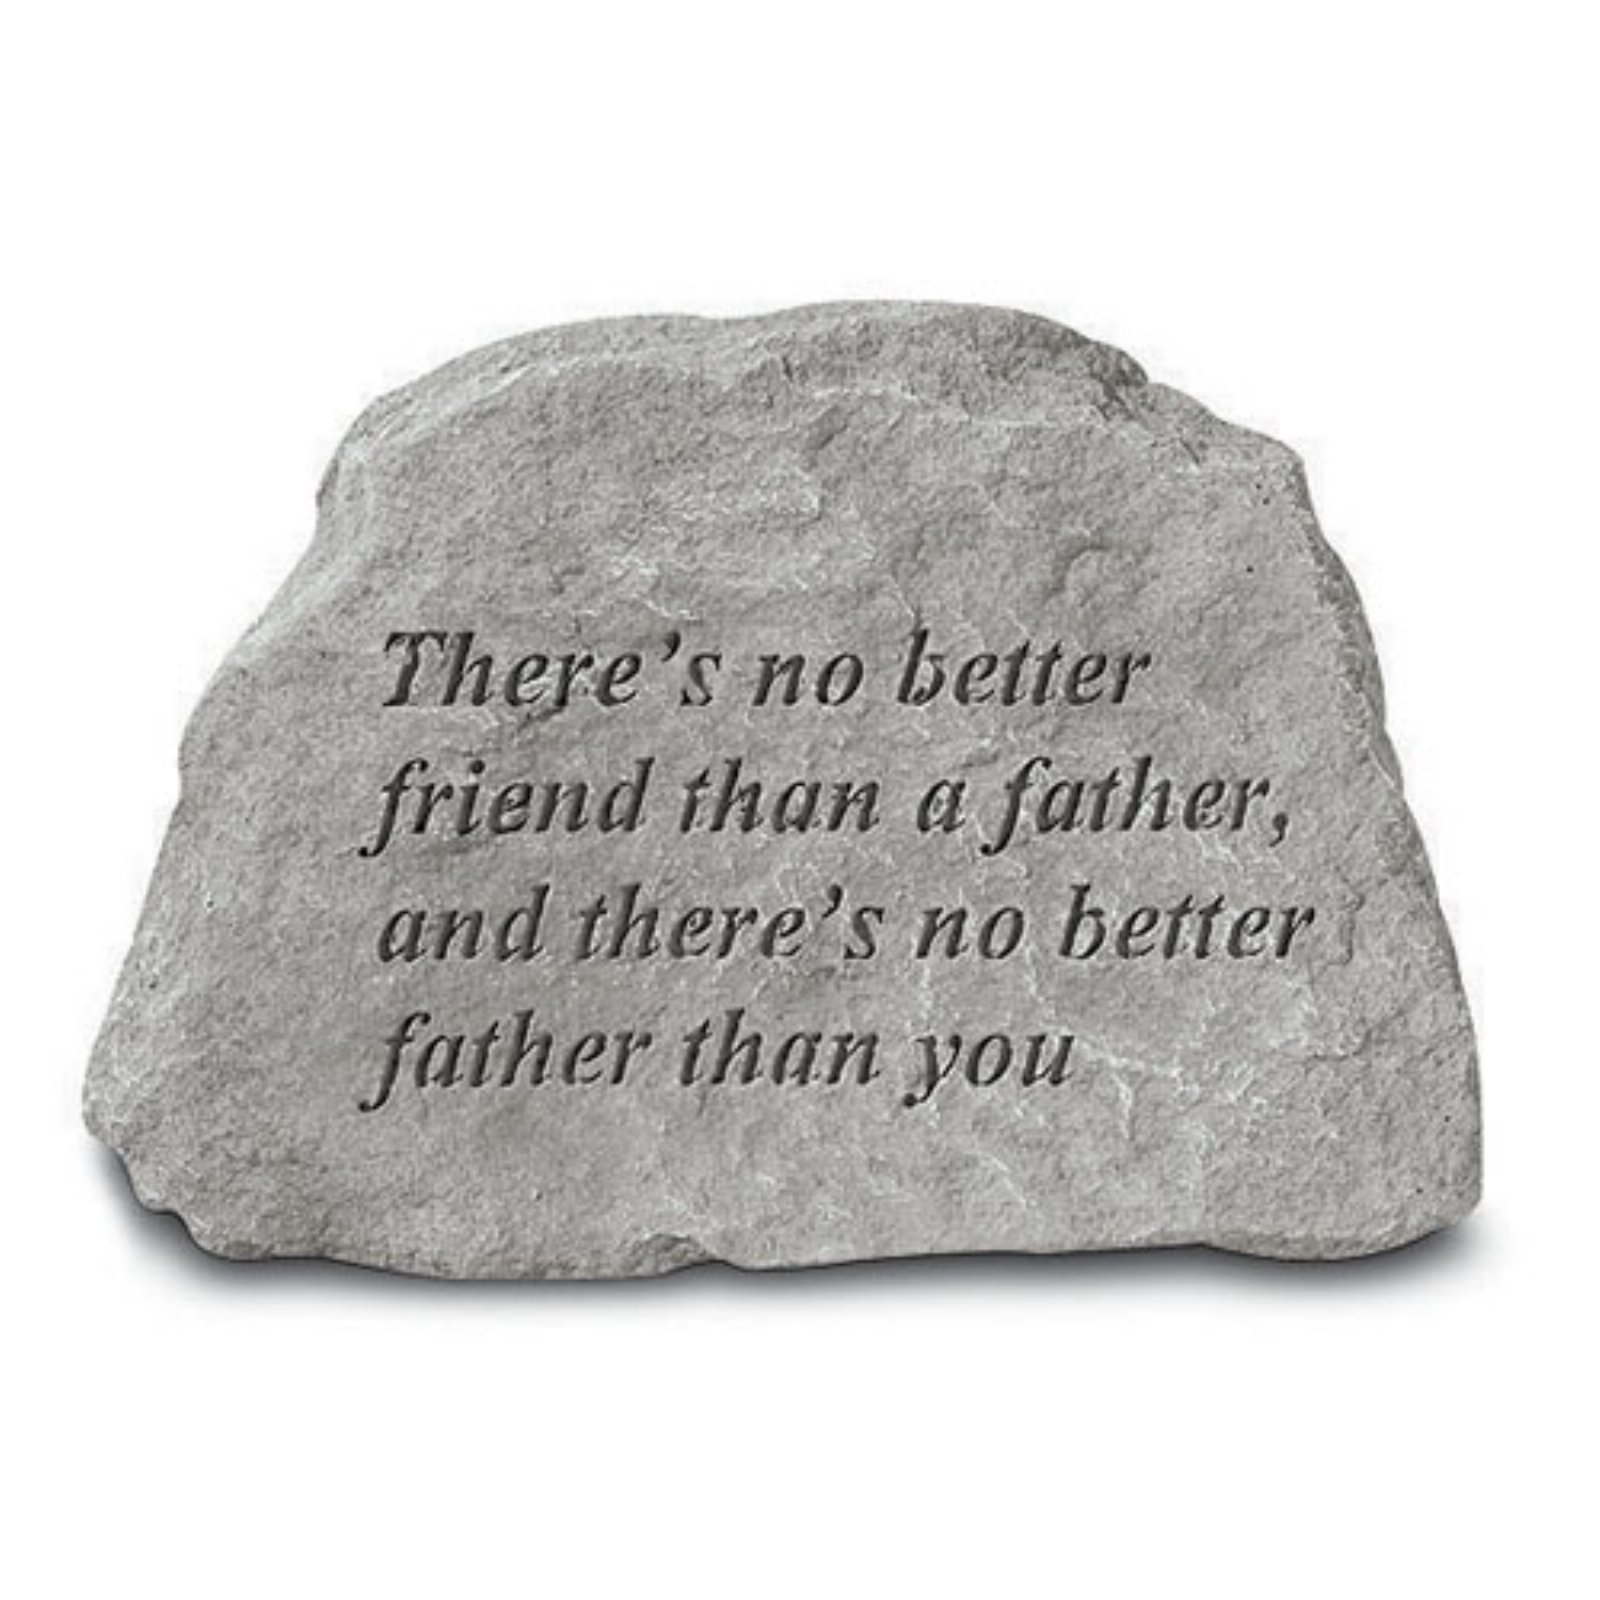 There's No Better Friend Garden Accent Stone by Kay Berry